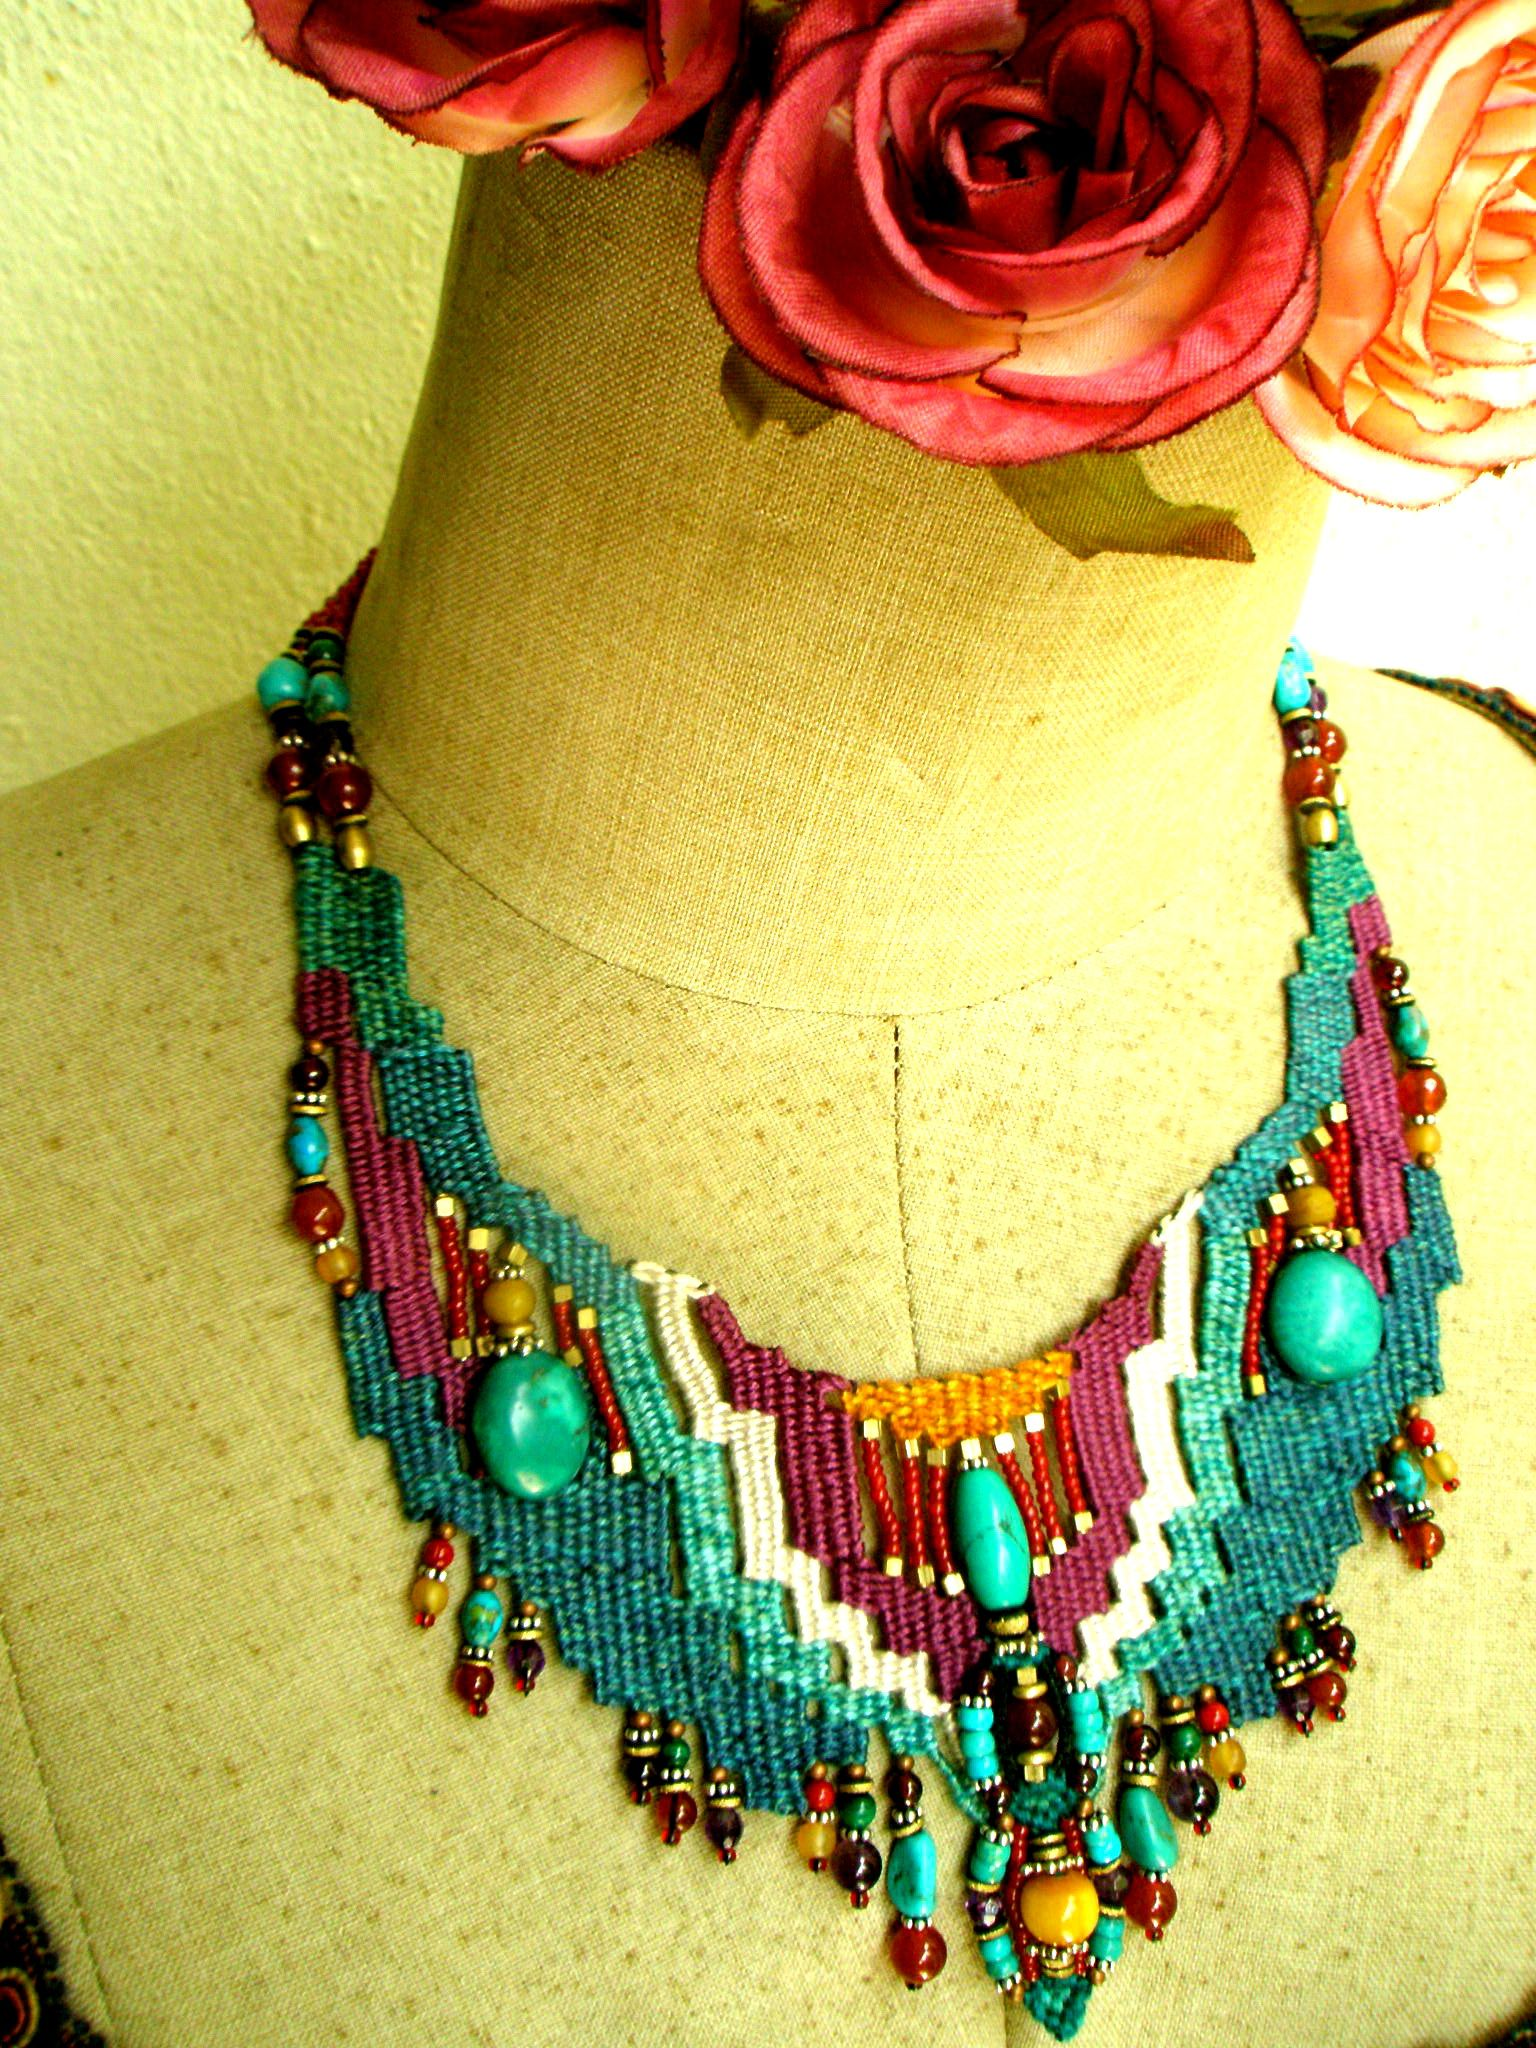 ~ Weaving Jewelry ~